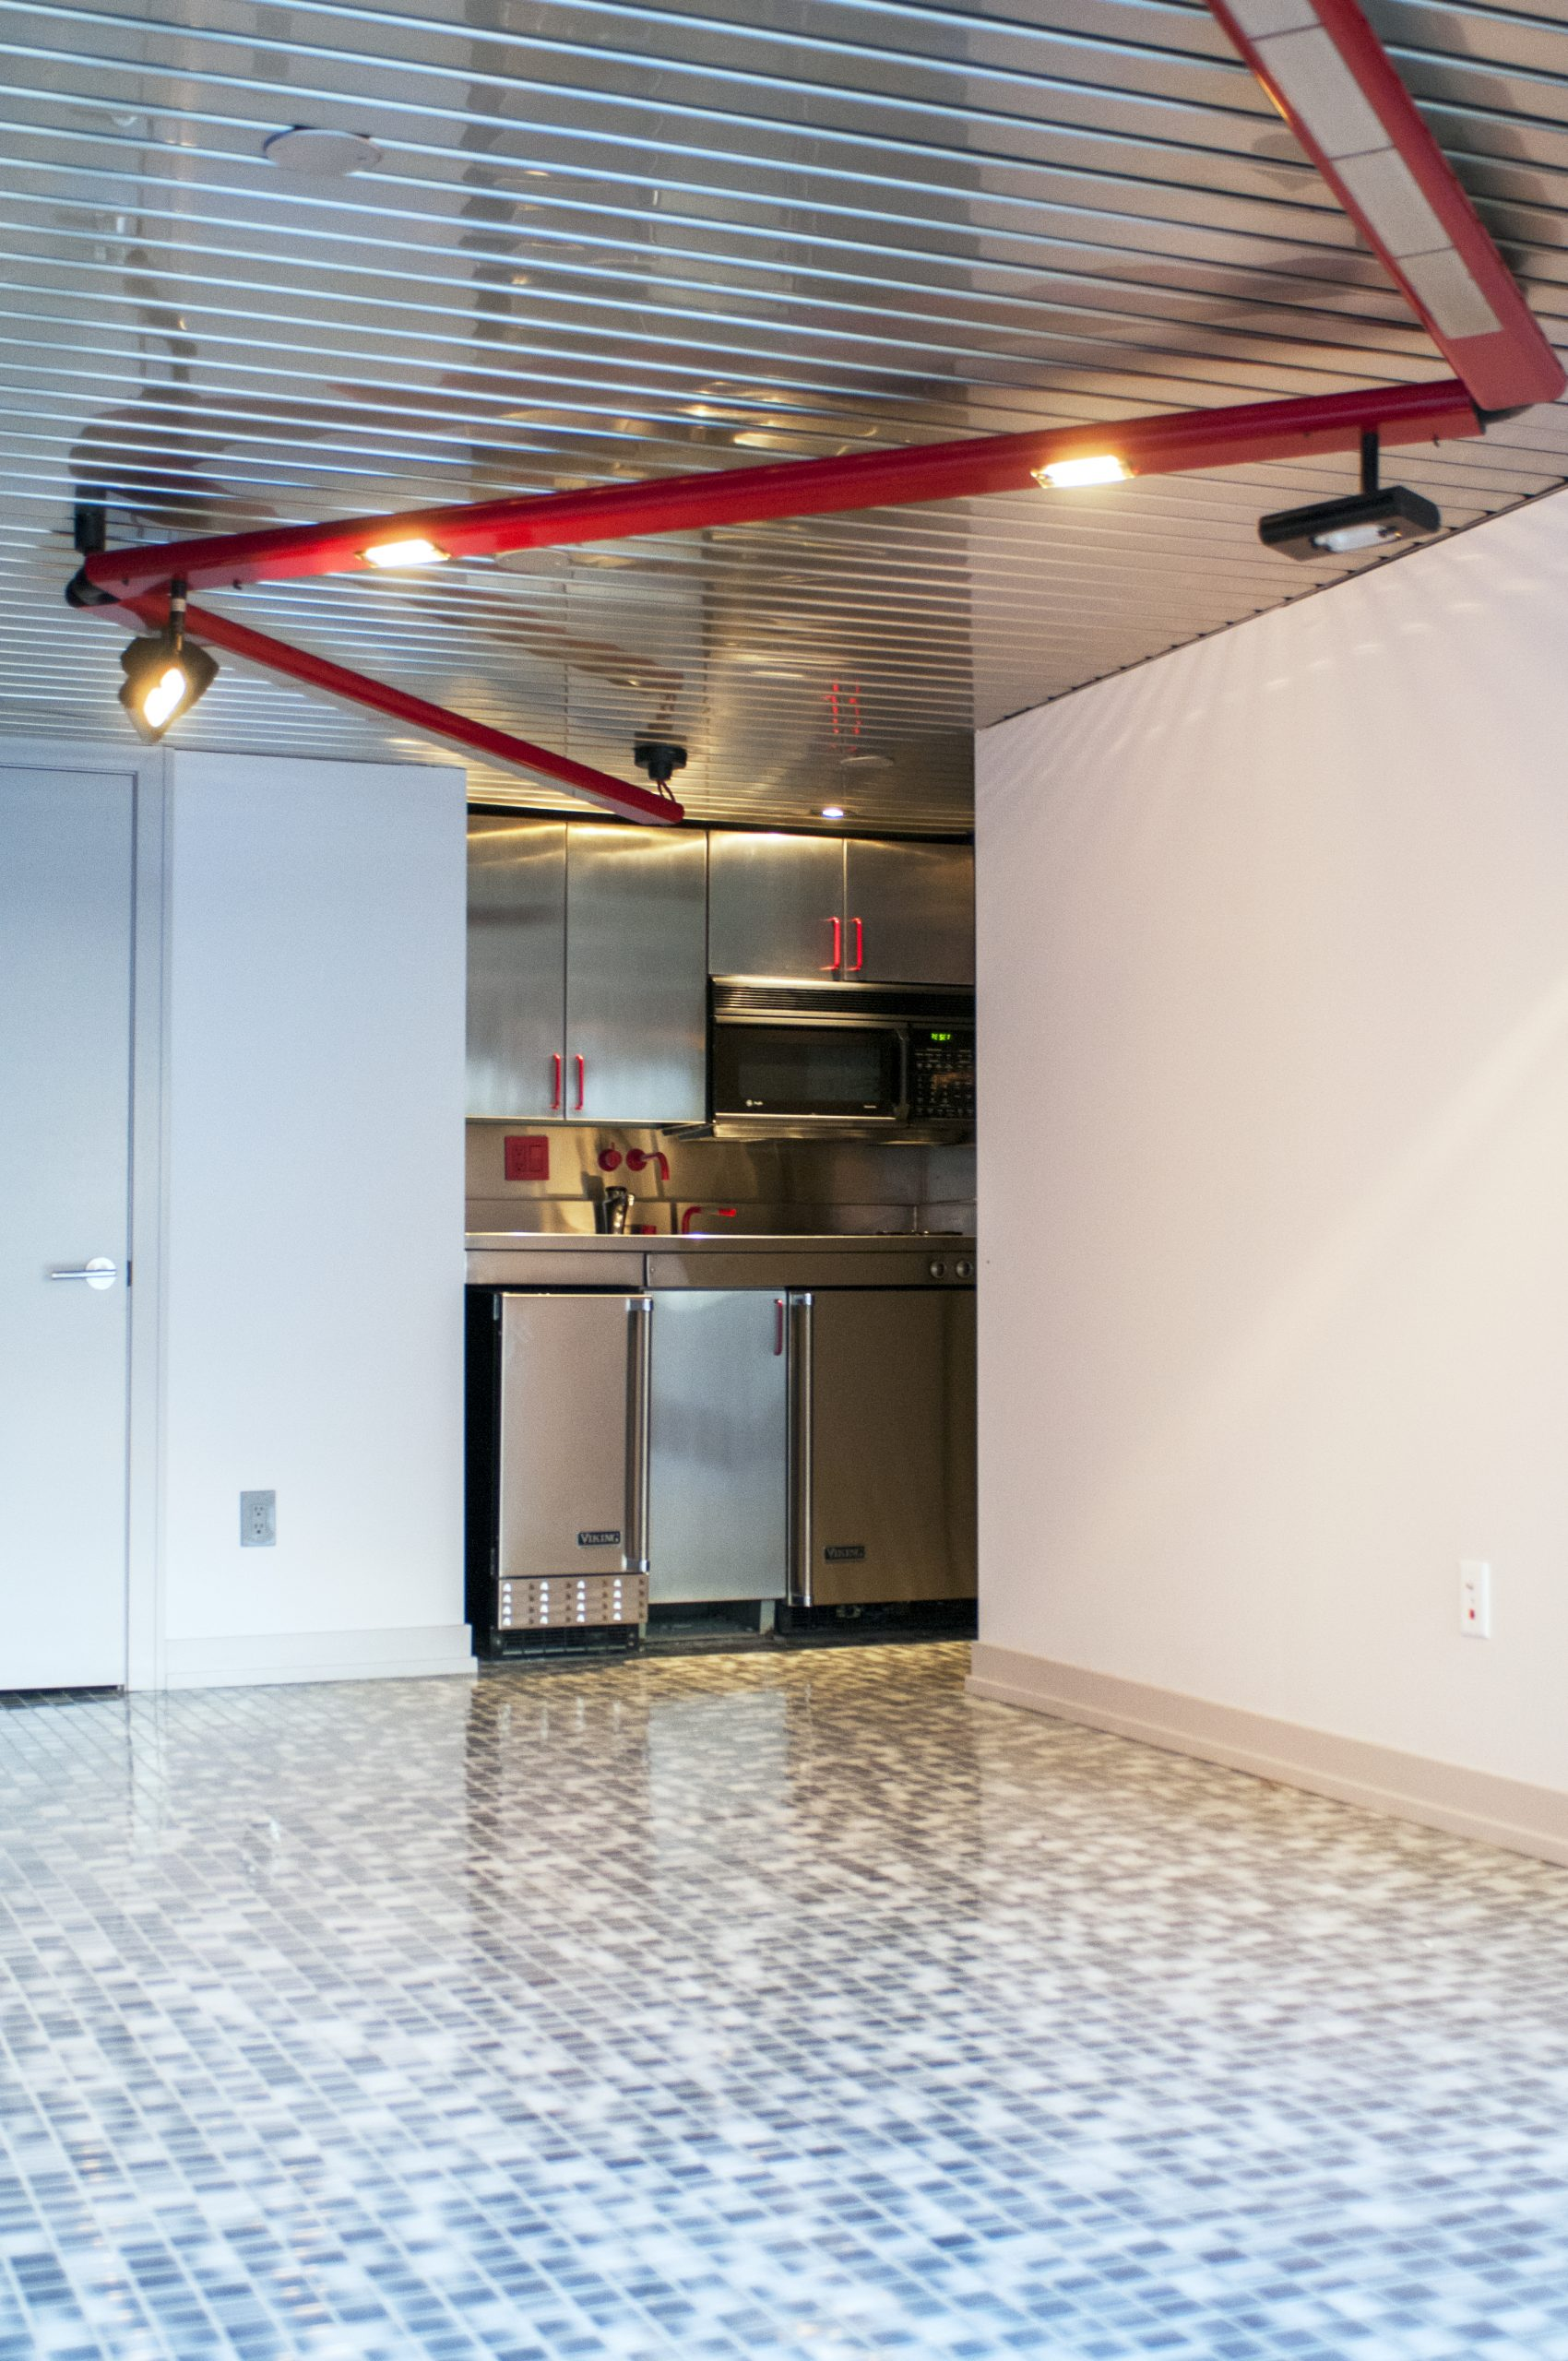 Weese designed the ground floor to feel like the lower deck of a ship.